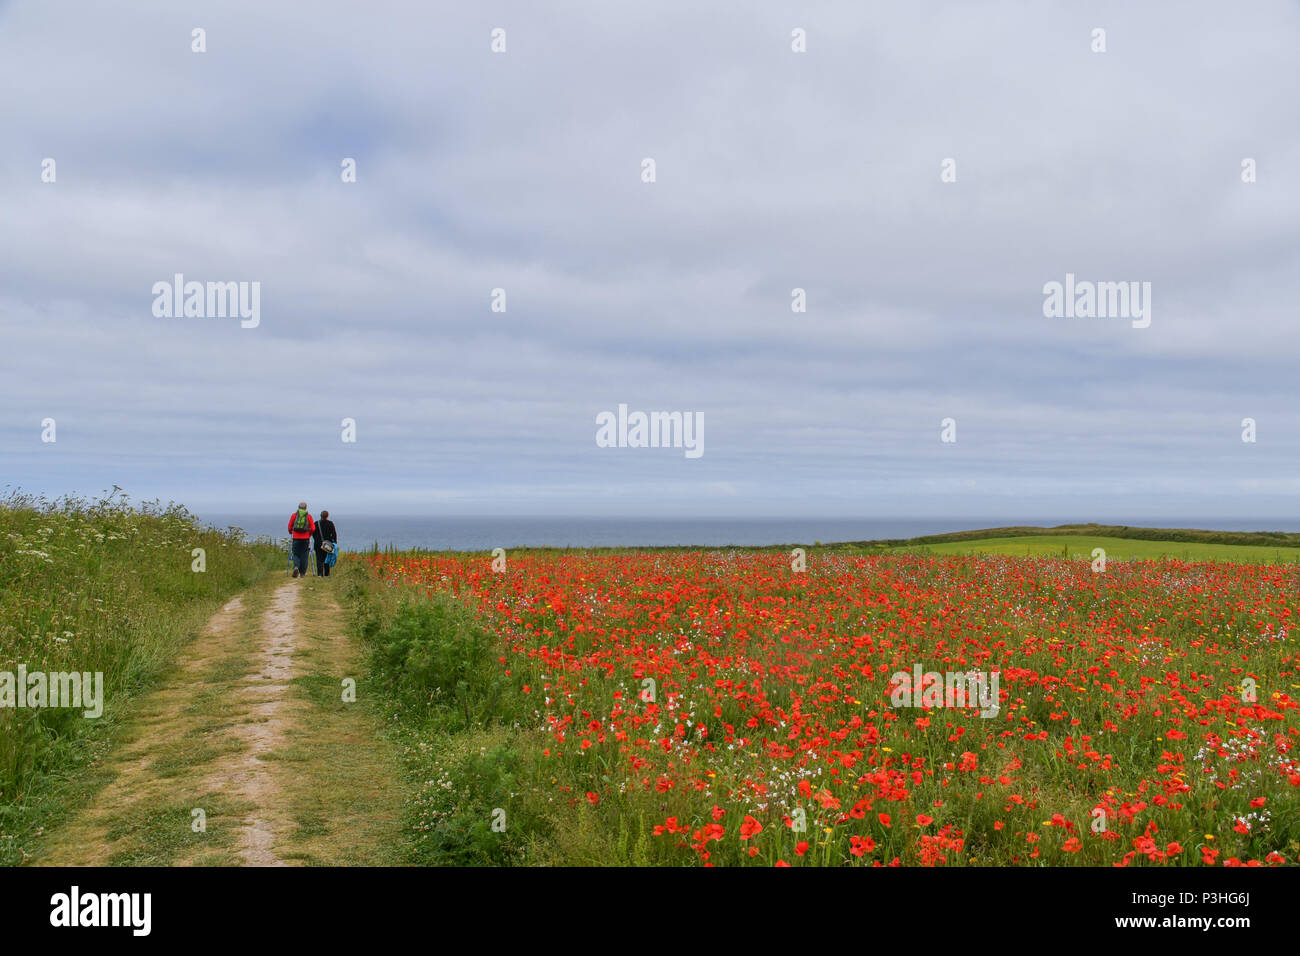 Crantock, Cornwall, UK. 19th June 2018. UK Weather. A warm, if cloudy day in North Cornwall. Seen here the West Pentire Arable Fields project. This area is managed specifically as a nature reserve. At this time of the year the fields are full of poppies and cornflowers. In the air is the constant sound of Skylarks. The scheme is managed by Natural England, their farm tenants and the national trust. Credit: Simon Maycock/Alamy Live News - Stock Image